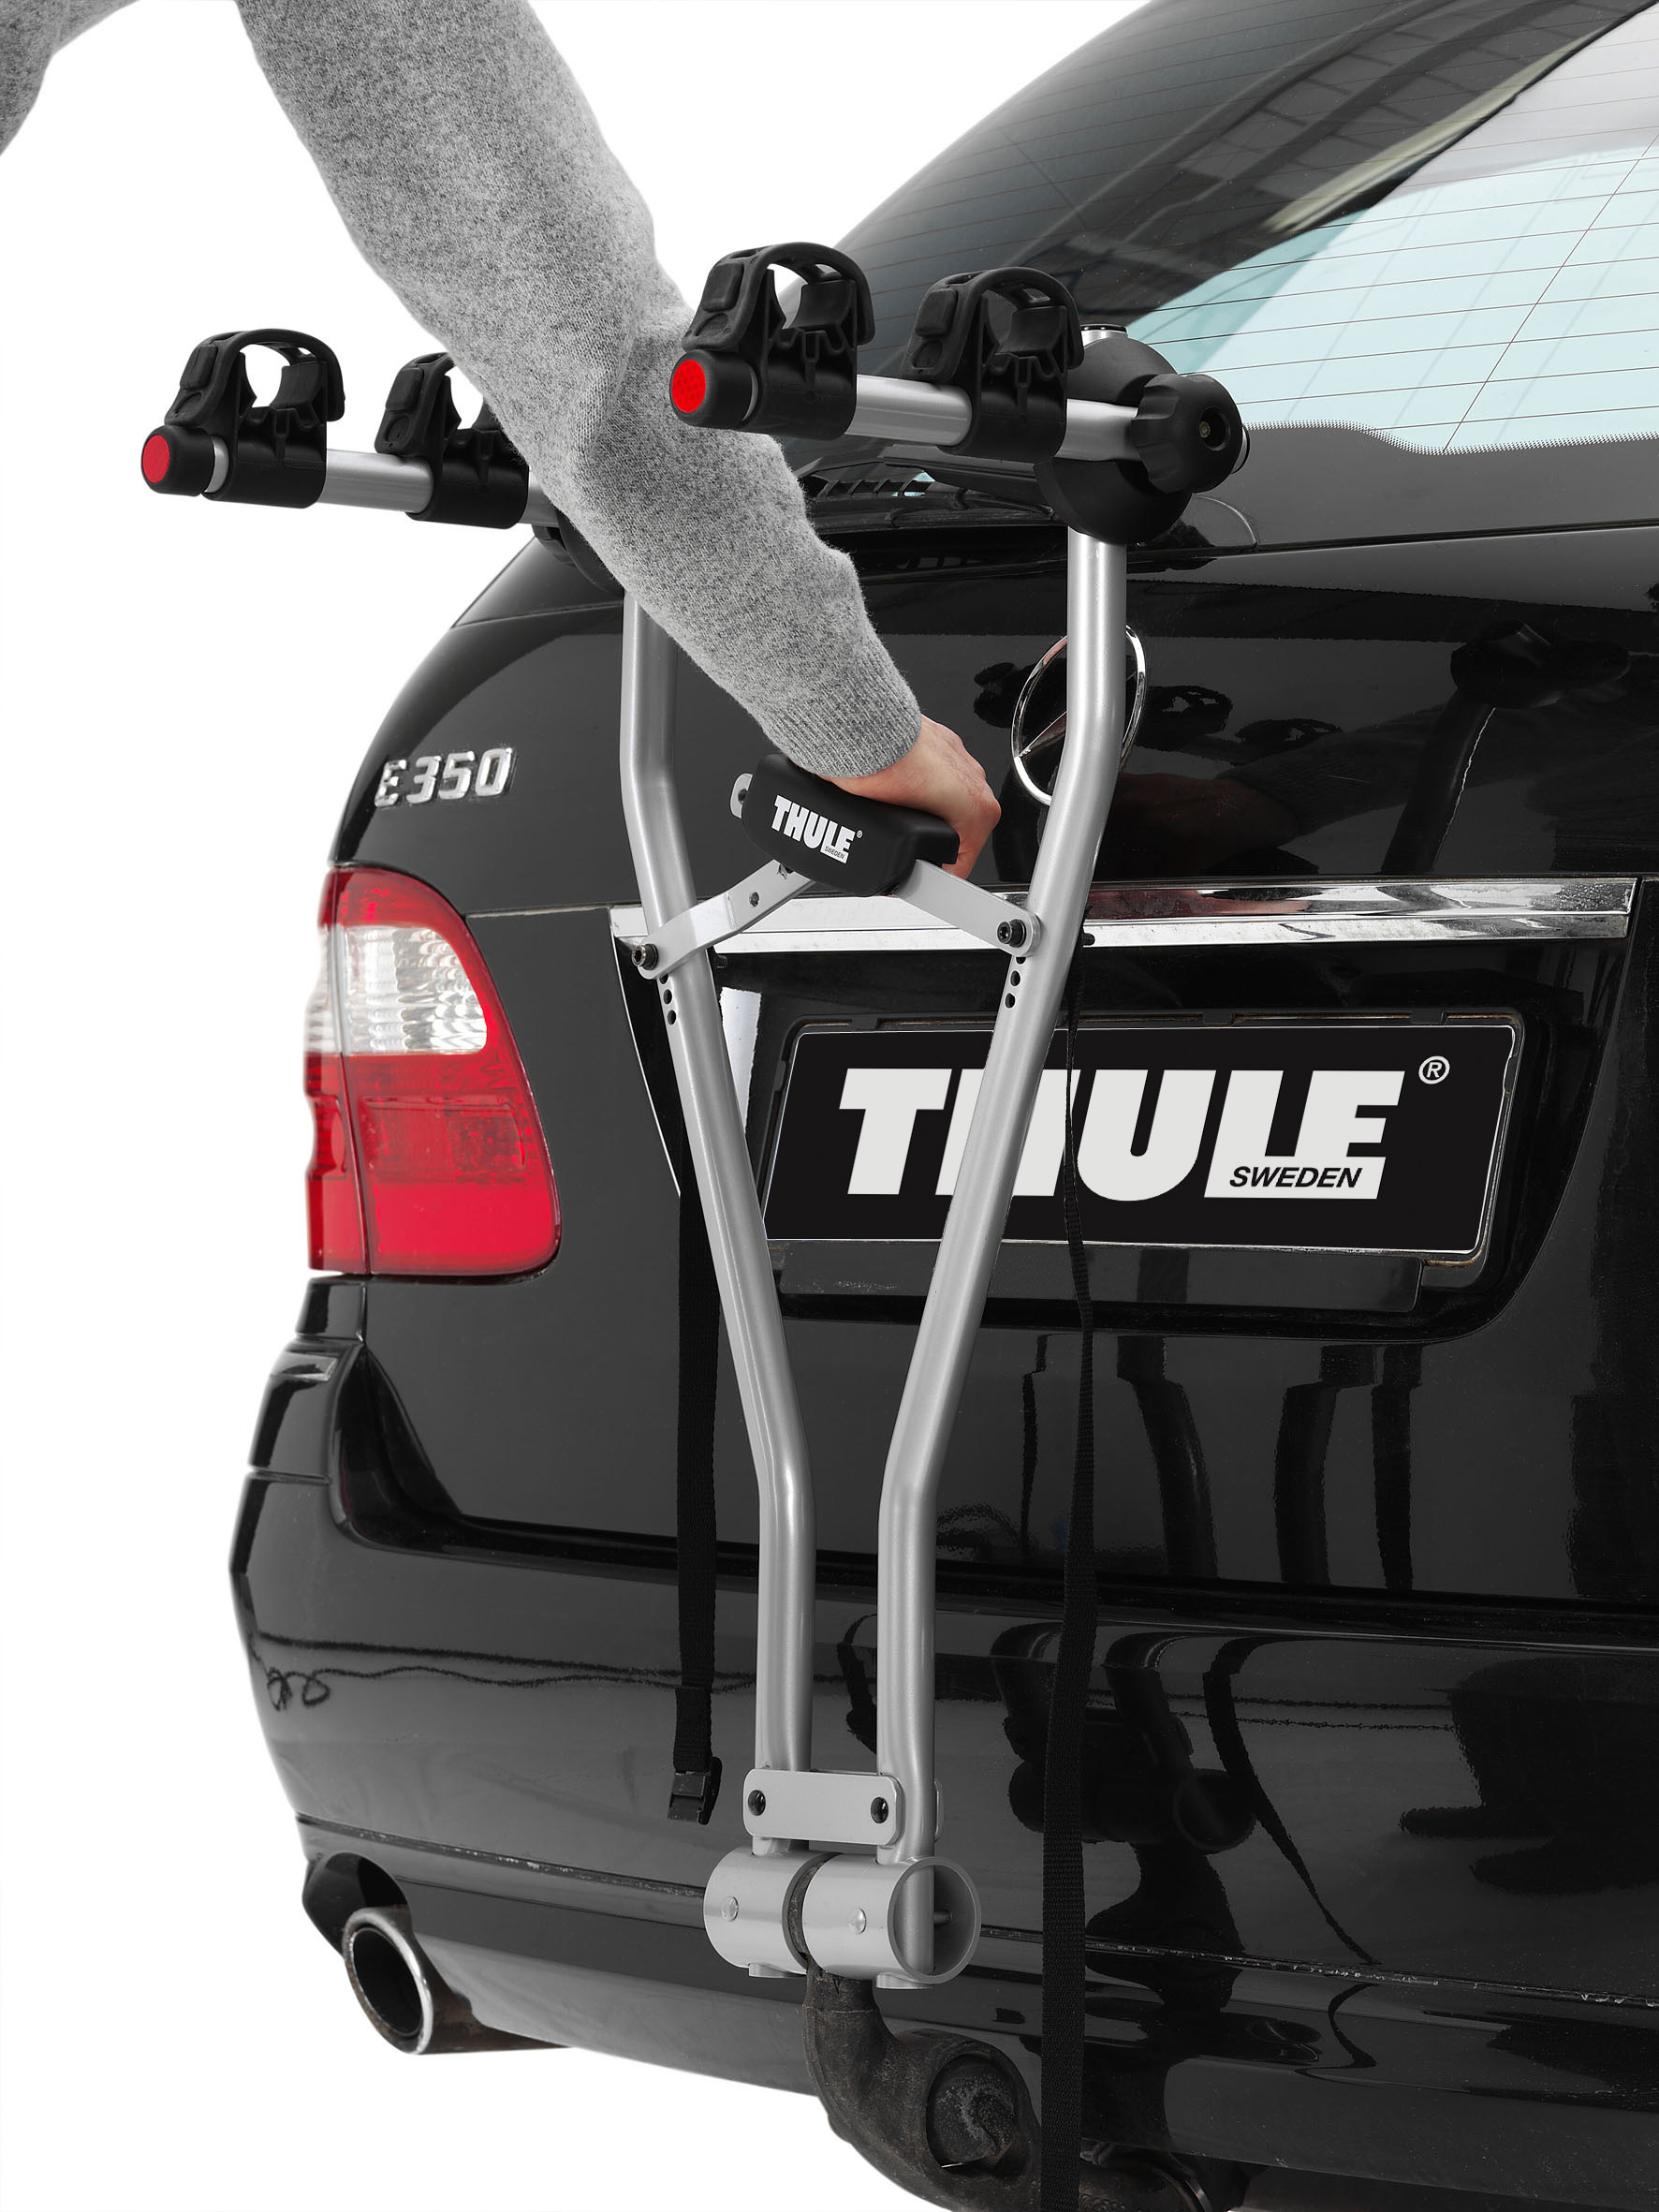 thule xpress 2 bike carrier 970 instore online free shipping. Black Bedroom Furniture Sets. Home Design Ideas